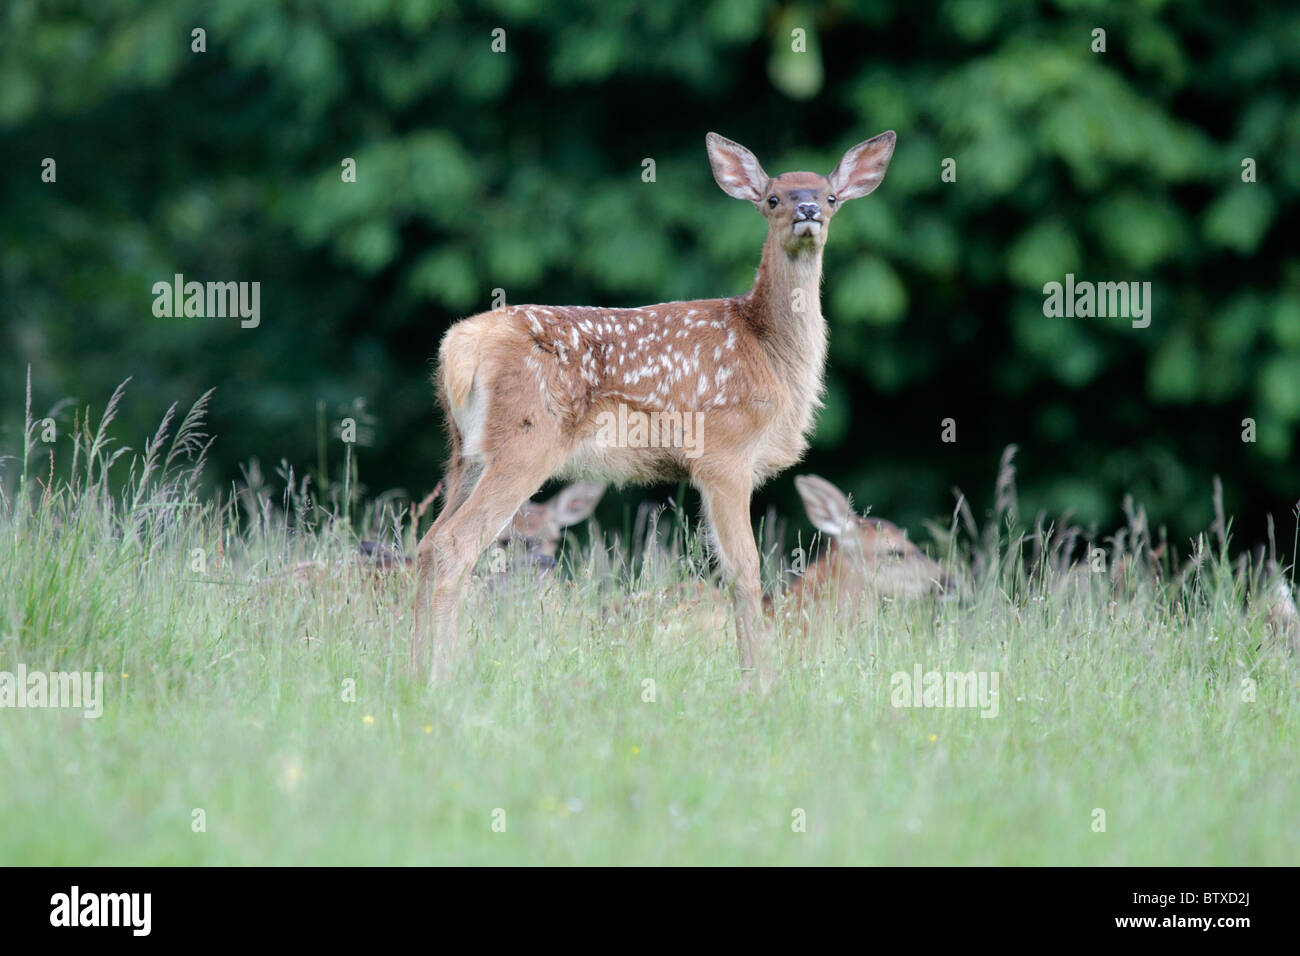 Red Deer (Cervus elaphus), fawn or calf on alert, Germany - Stock Image